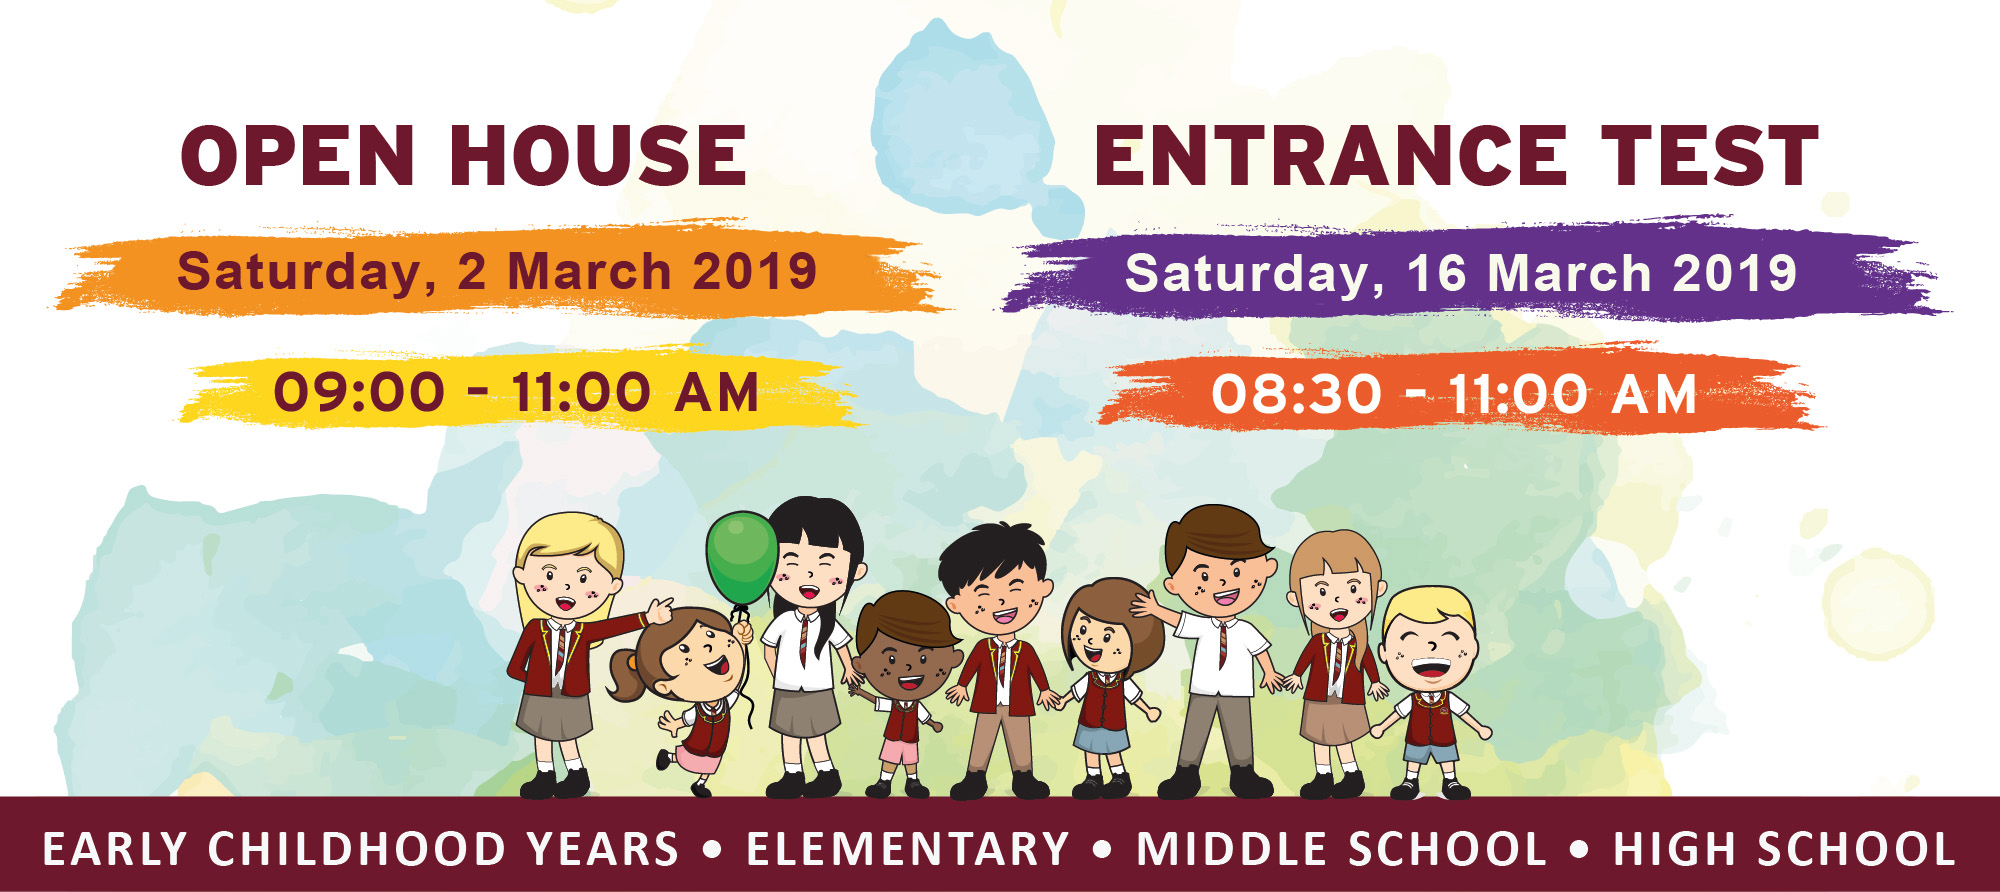 Open House and Entrance Test